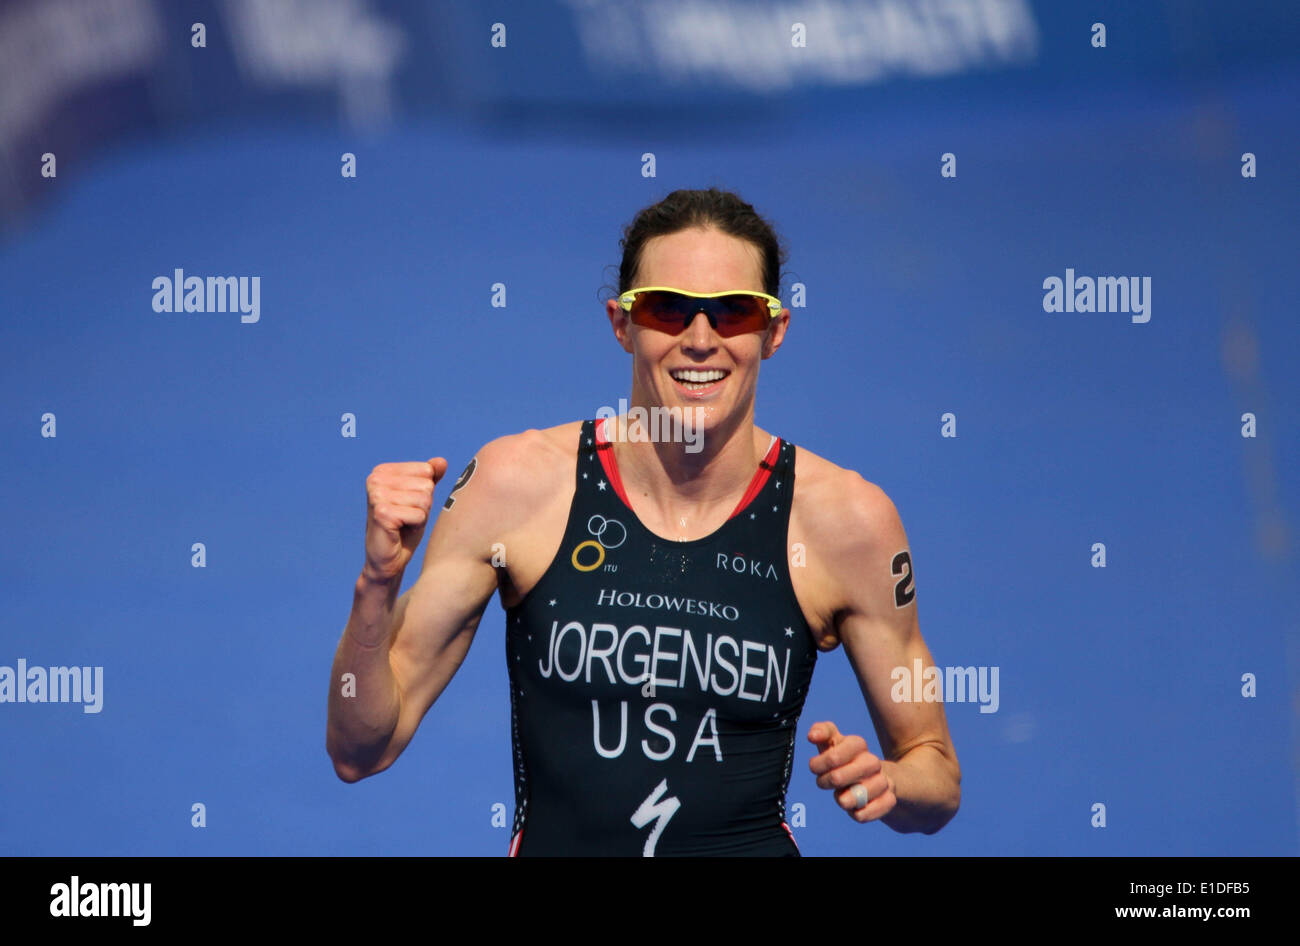 London, UK. 31st May, 2014. London, Rngland. 31st may 2014. Gwen Jorgensen of USA wins the women elite ITU Triathlon held in London. Credit:  petericardo lusabia/Alamy Live News - Stock Image